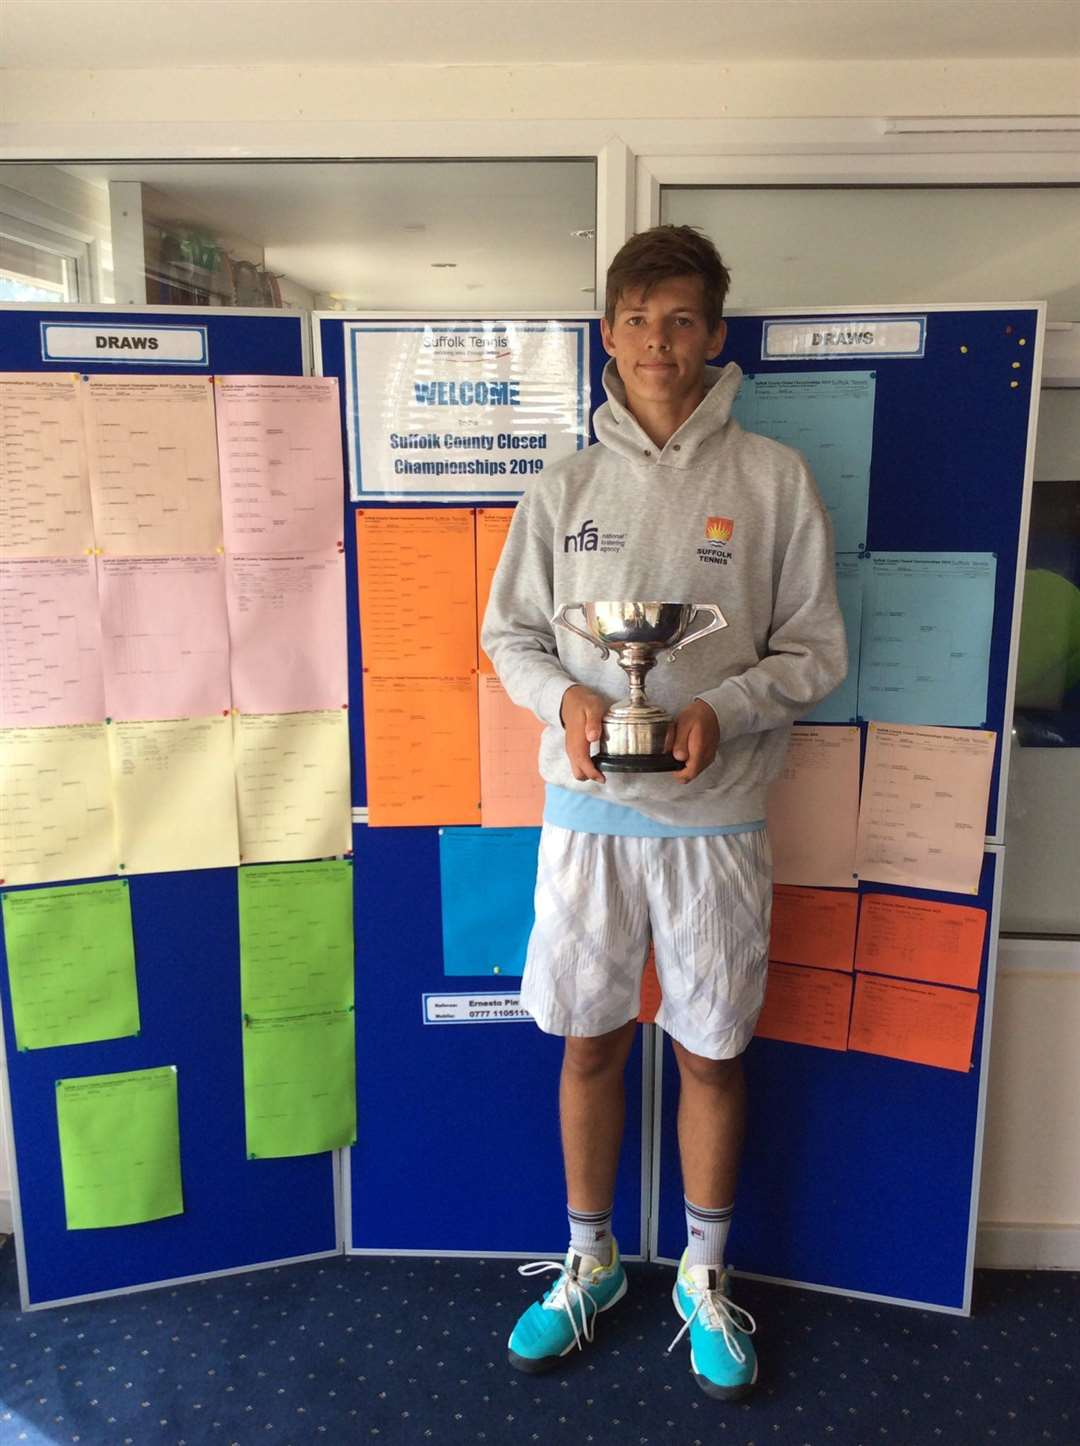 Asa Sumner-Keens won the Men's Singles and Doubles, U18 Singles and Doubles at the 2019 Suffolk LTA County Closed Championships. Picture: Suffolk LTA (16445108)